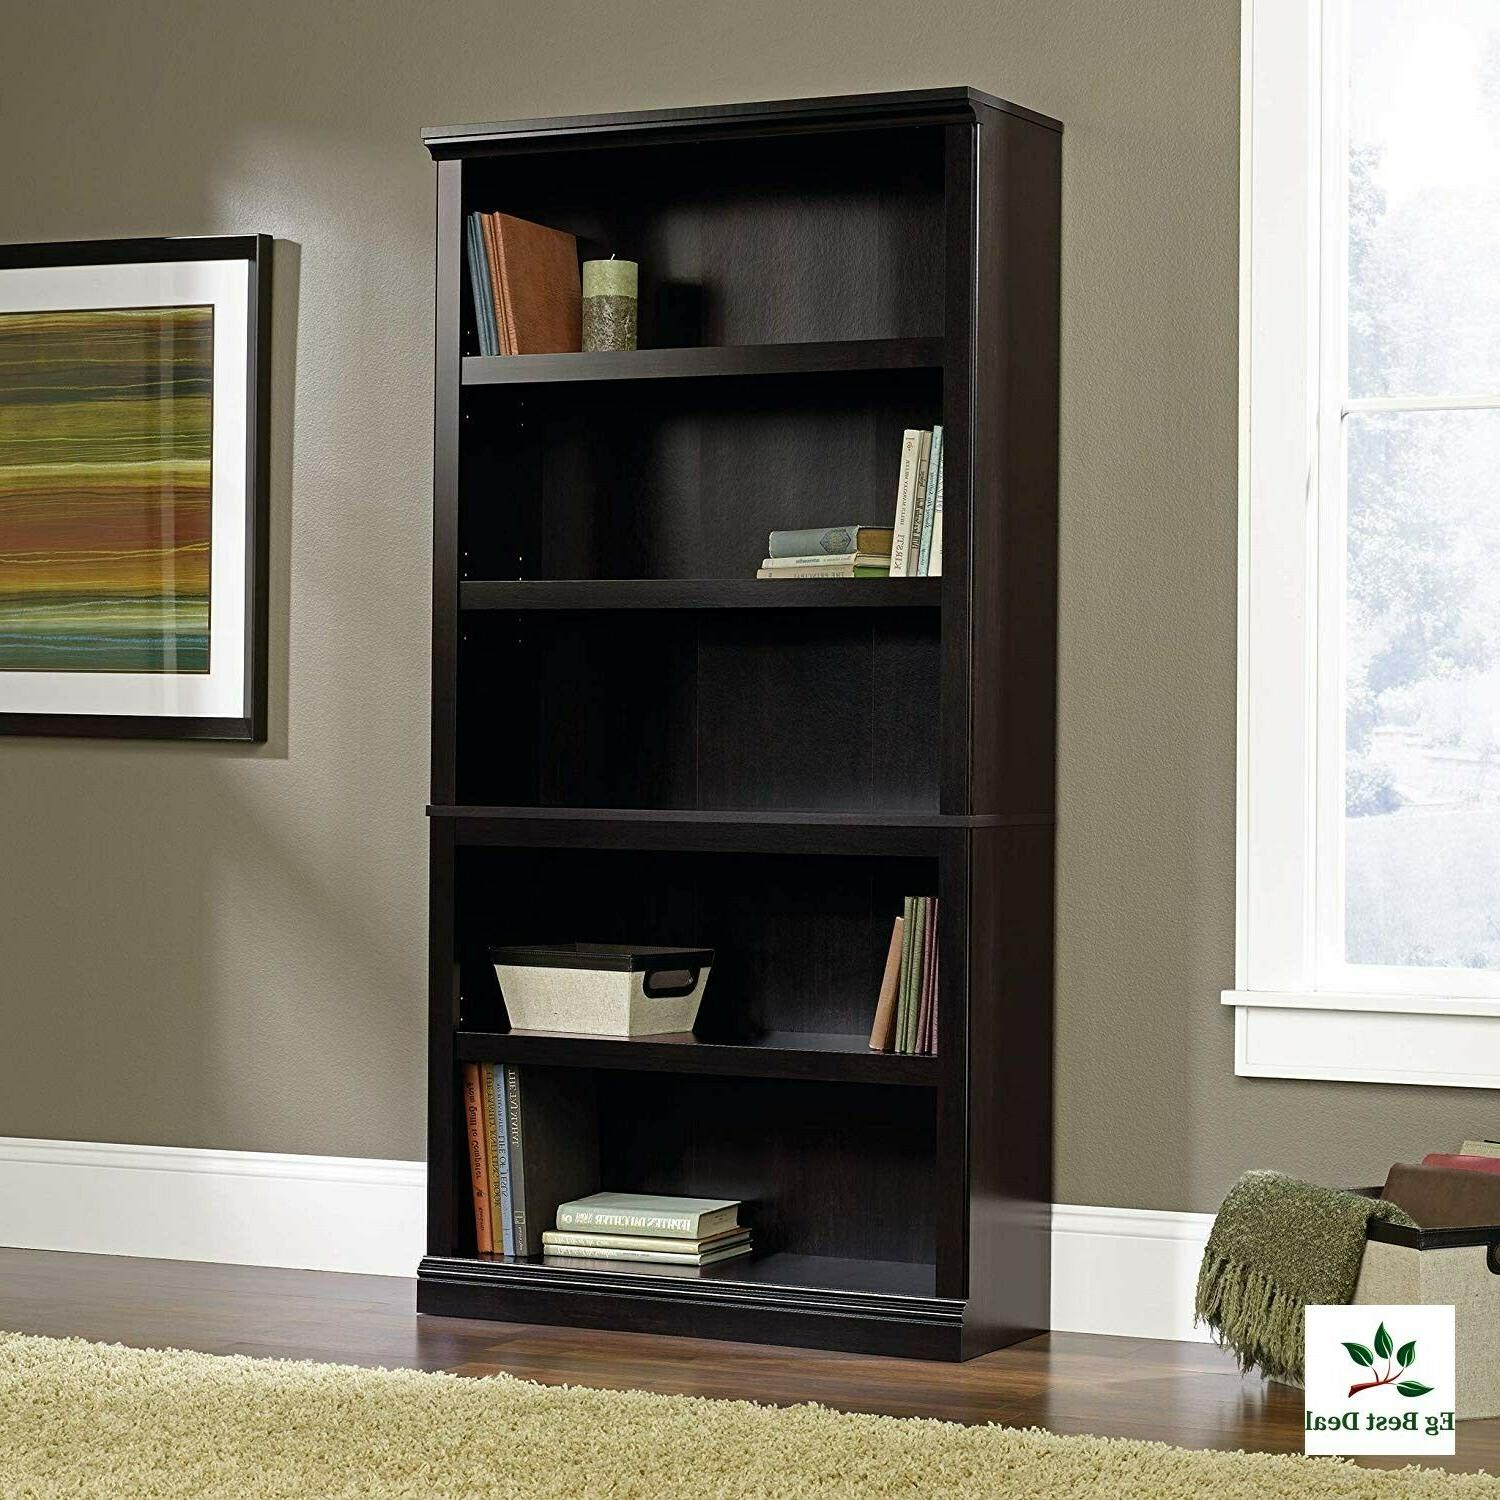 Narrow Bookshelf 5 Tier Tall Bookcase Black Sauder Large Woo